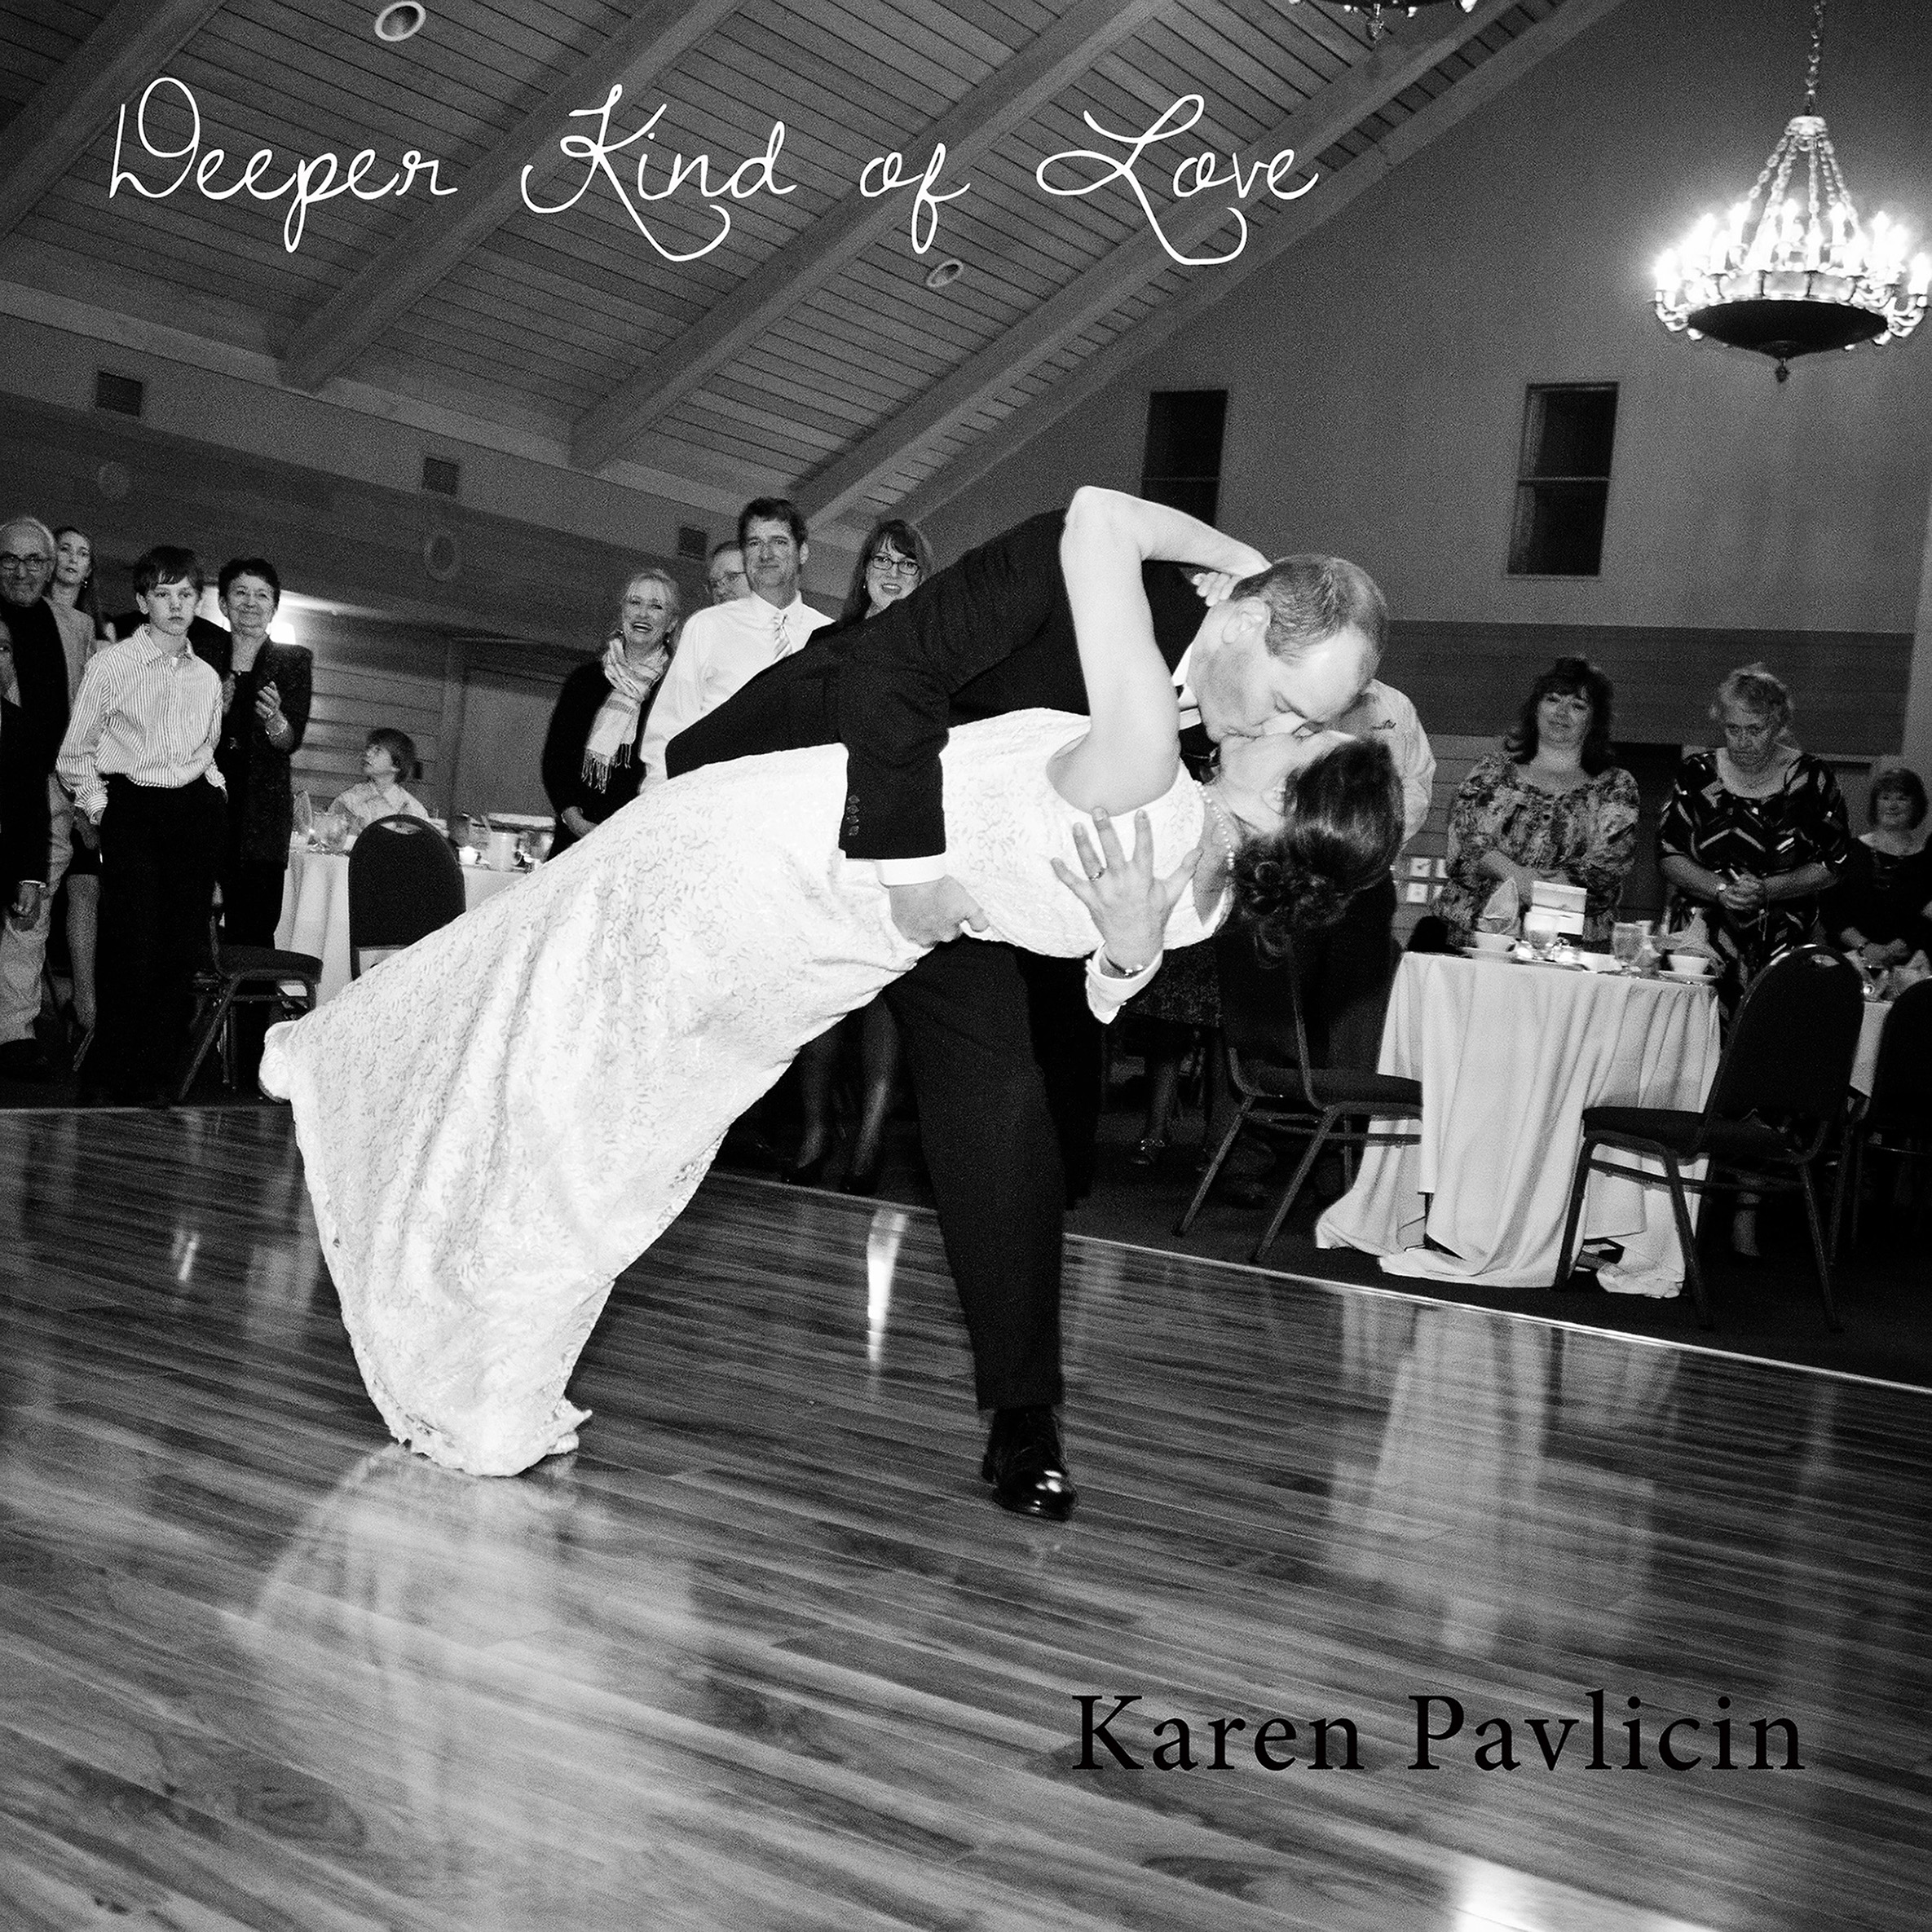 Deeper Kind of Love (song) by Karen Pavlicin